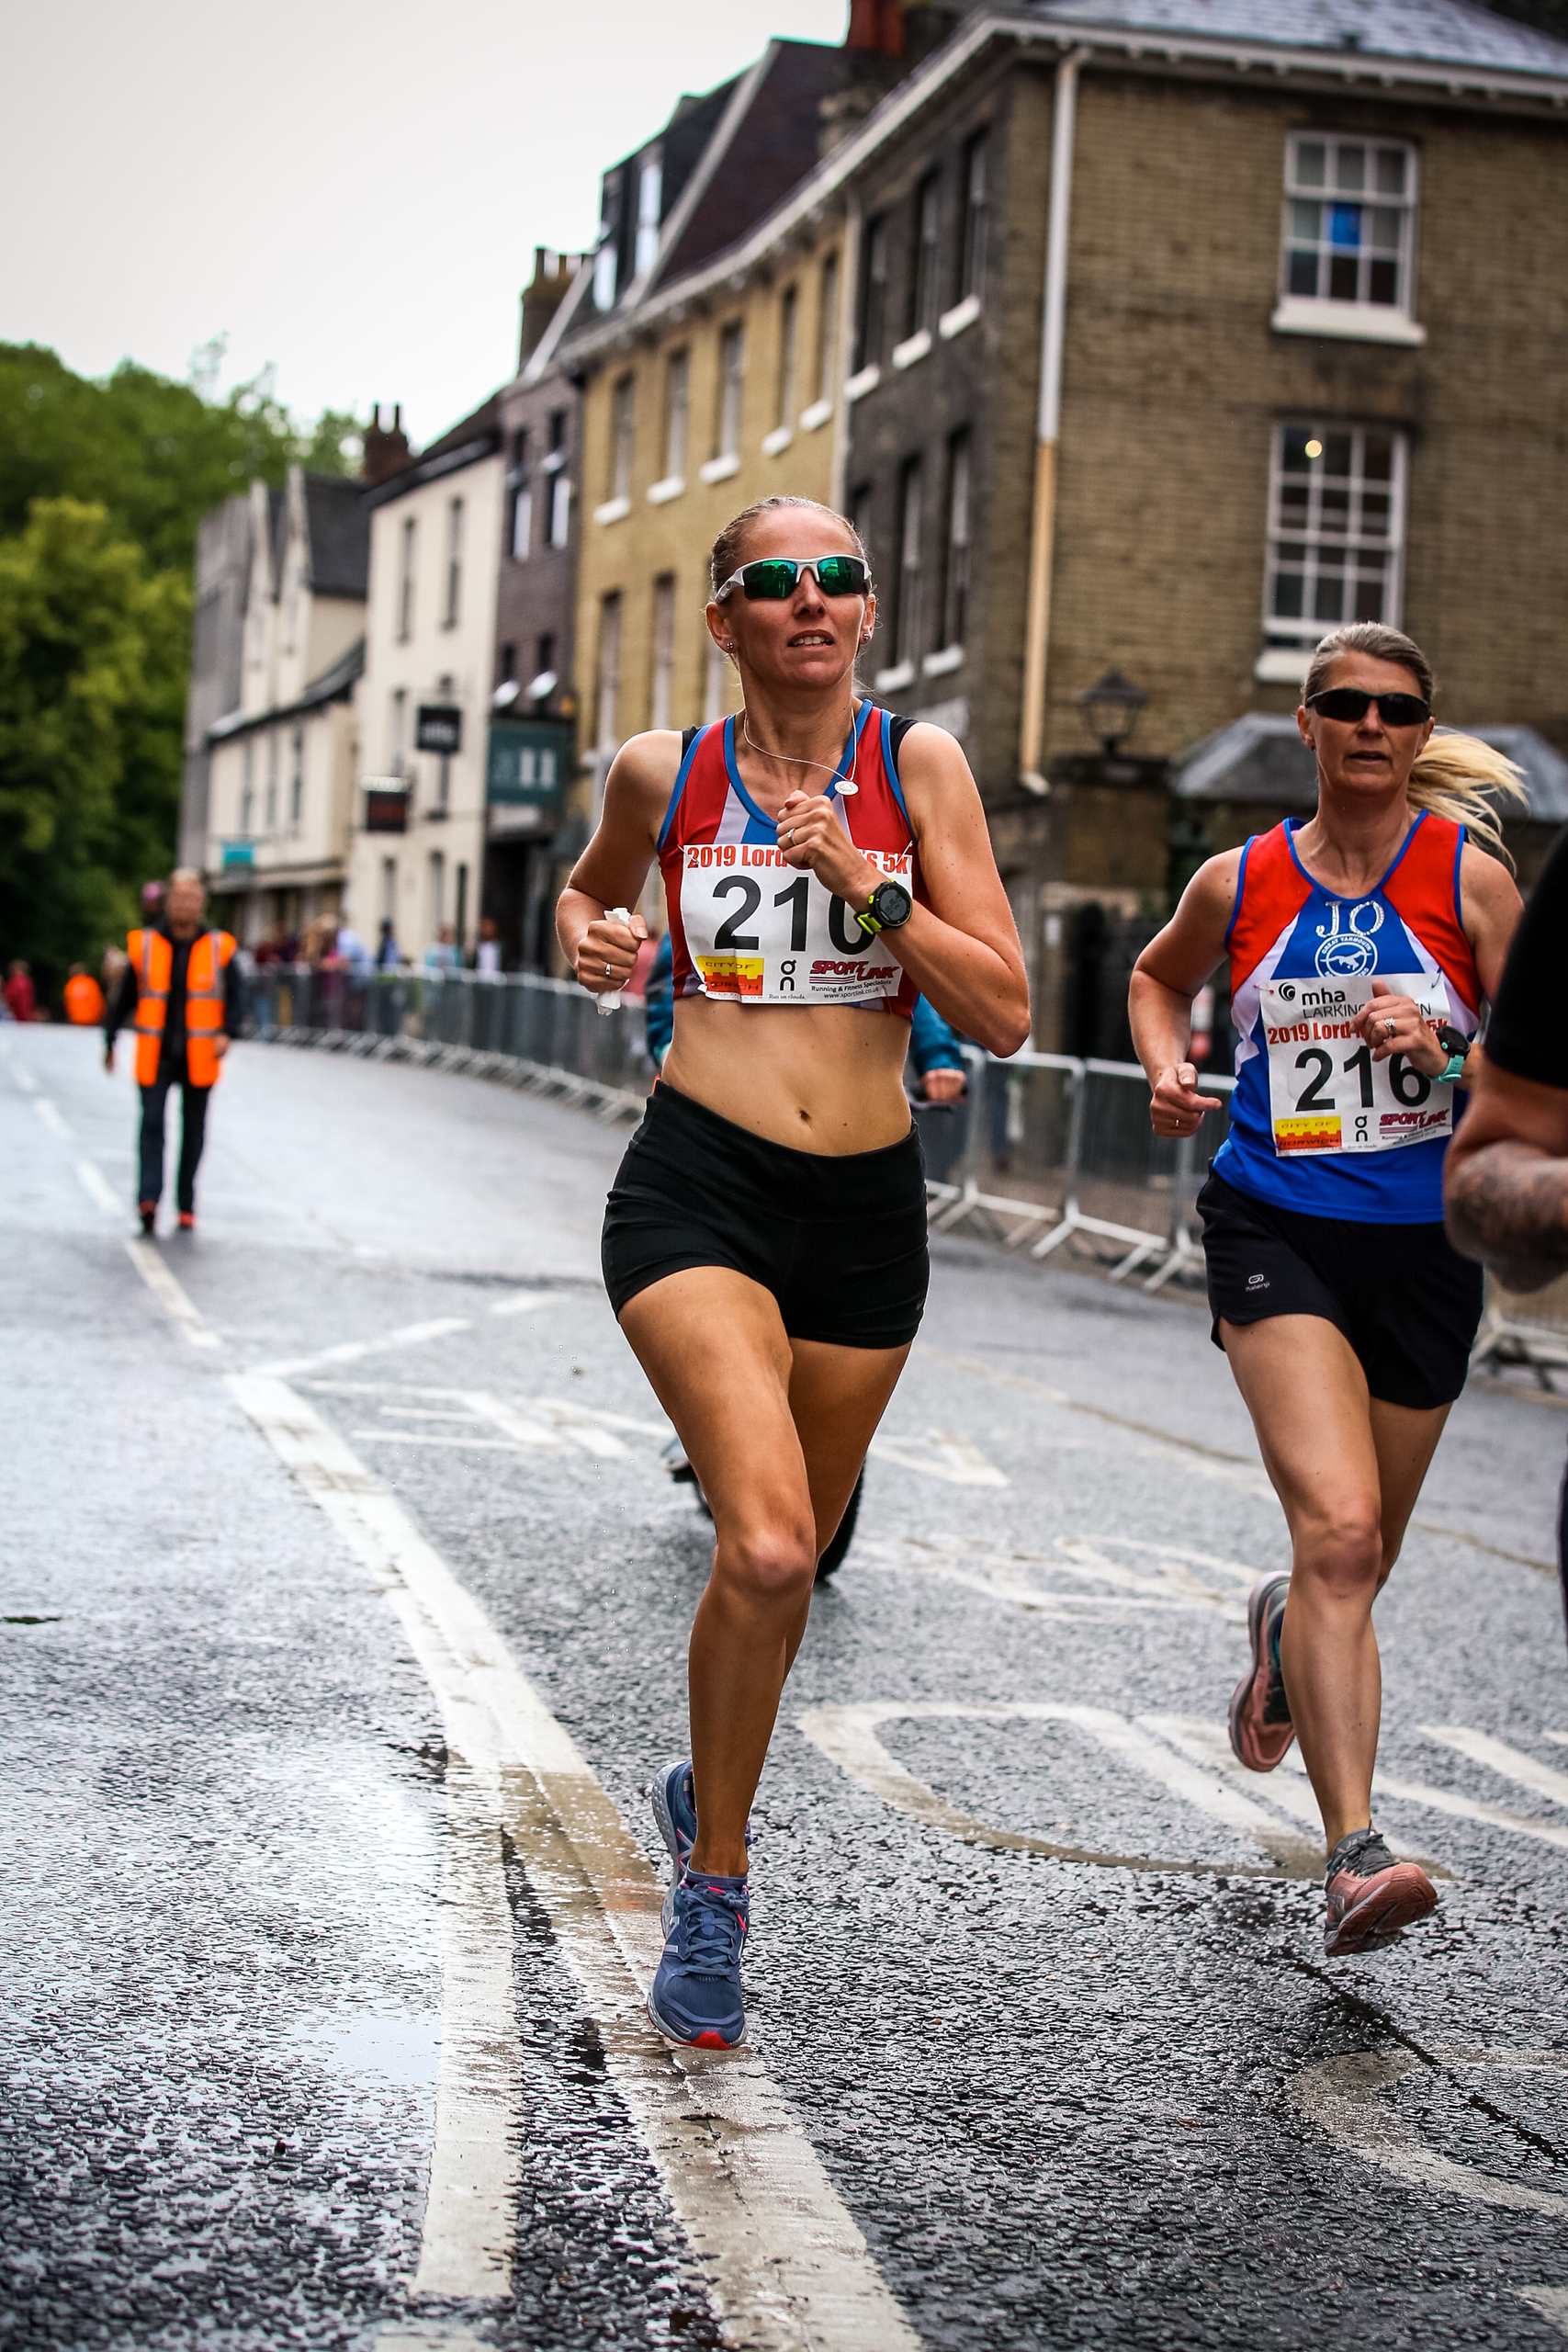 Lord mayors 5k 6-7-19 action shot.JPG